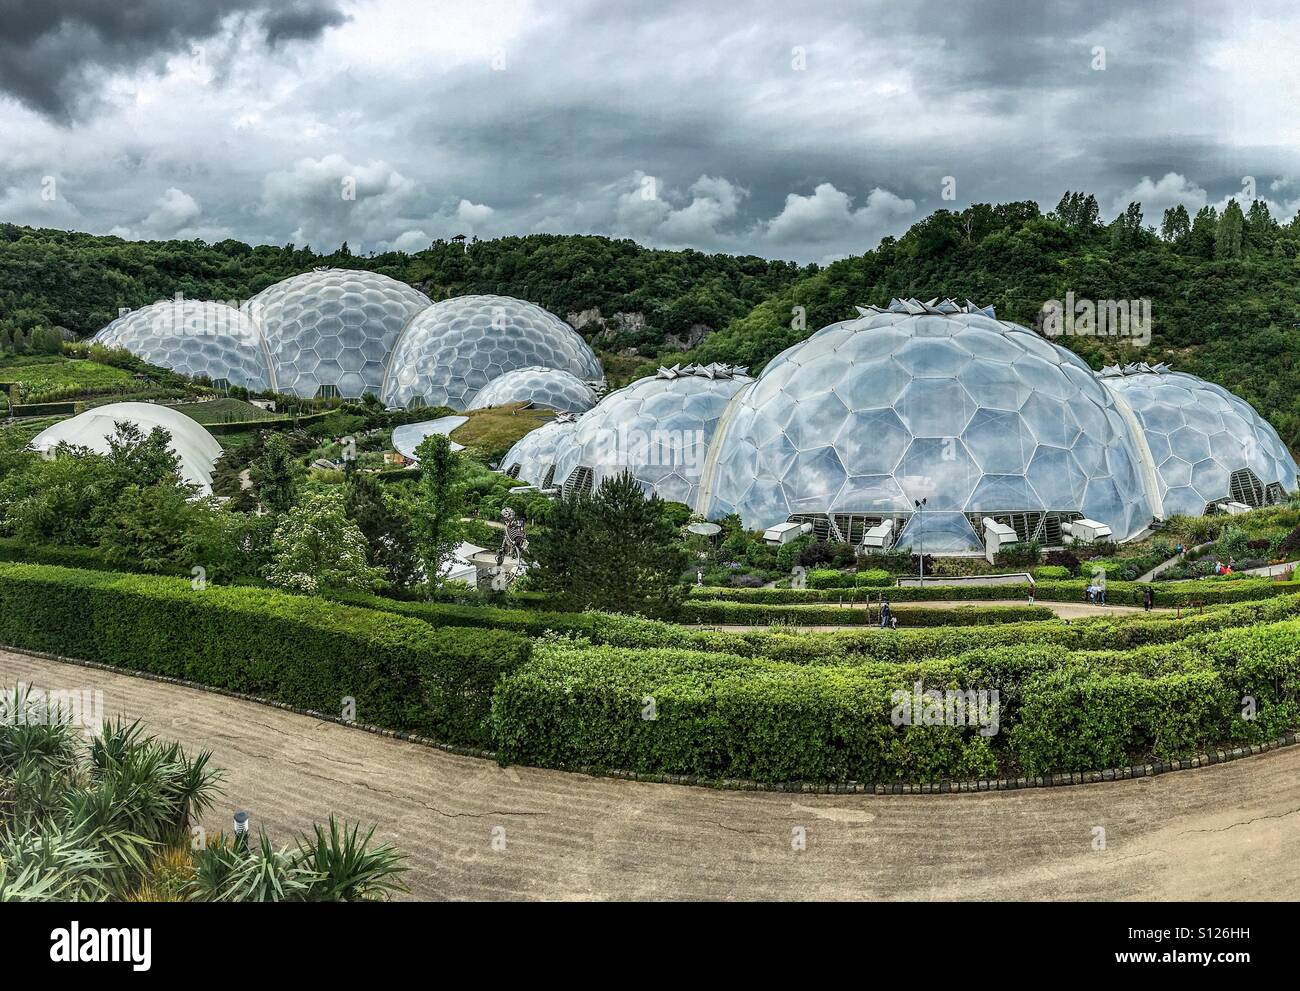 Eden project - Stock Image